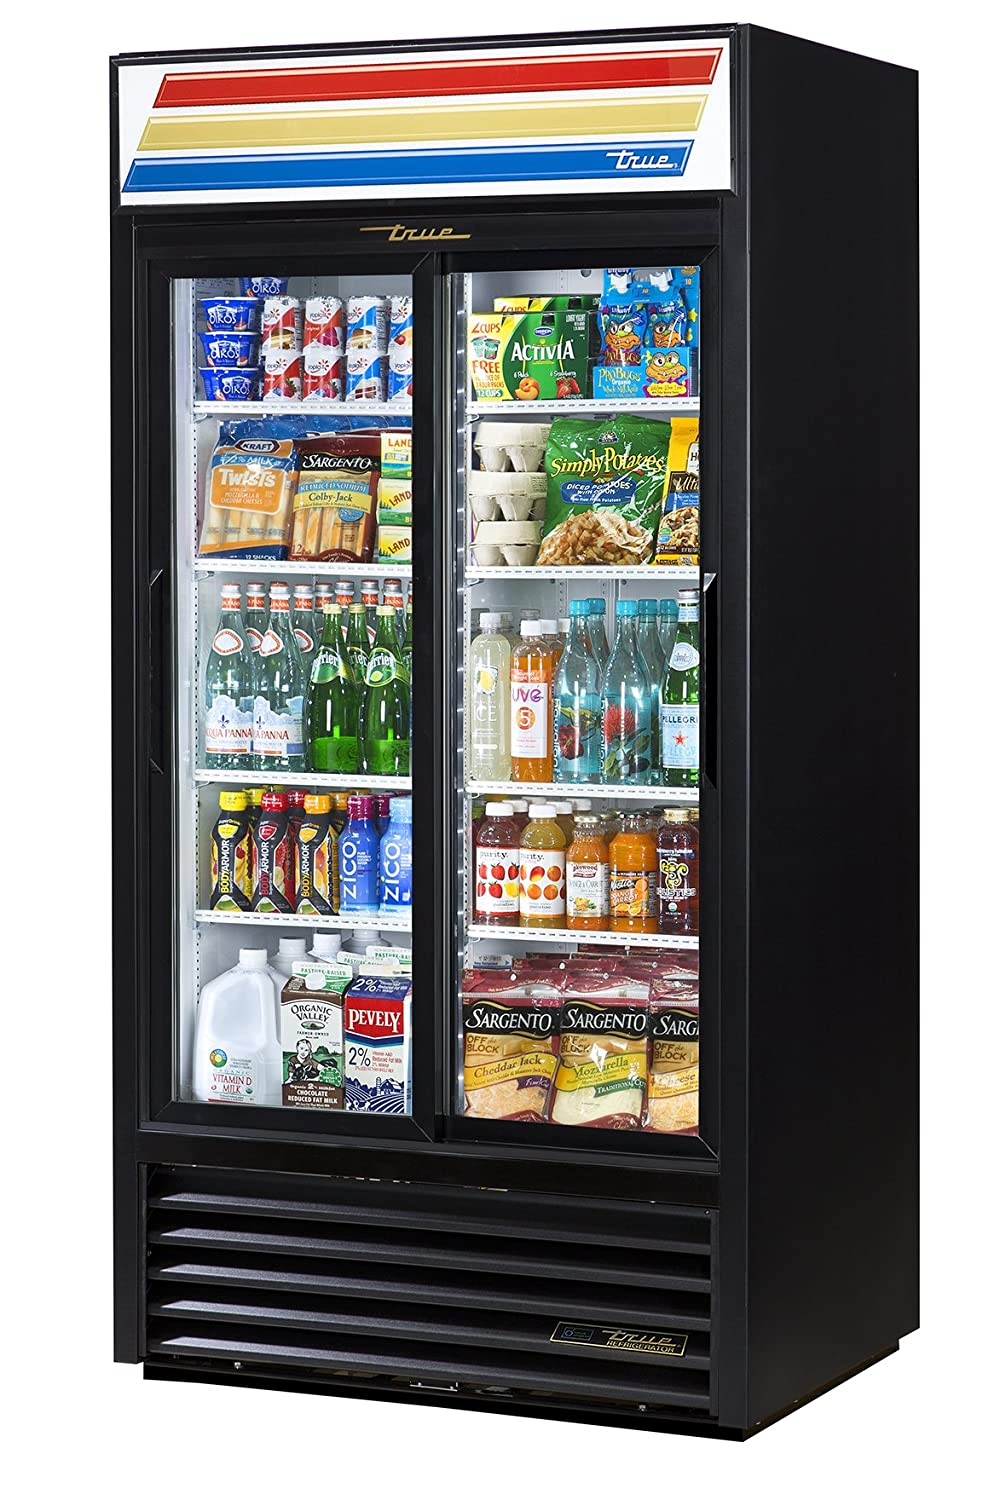 "True GDM-33-HC-LD Sliding Glass Door Merchandiser Refrigerator with Hydrocarbon Refrigerant and LED Lighting, Holds 33 Degree F to 38 Degree F, 78.625"" Height, 29.875"" Width, 30"" Length"